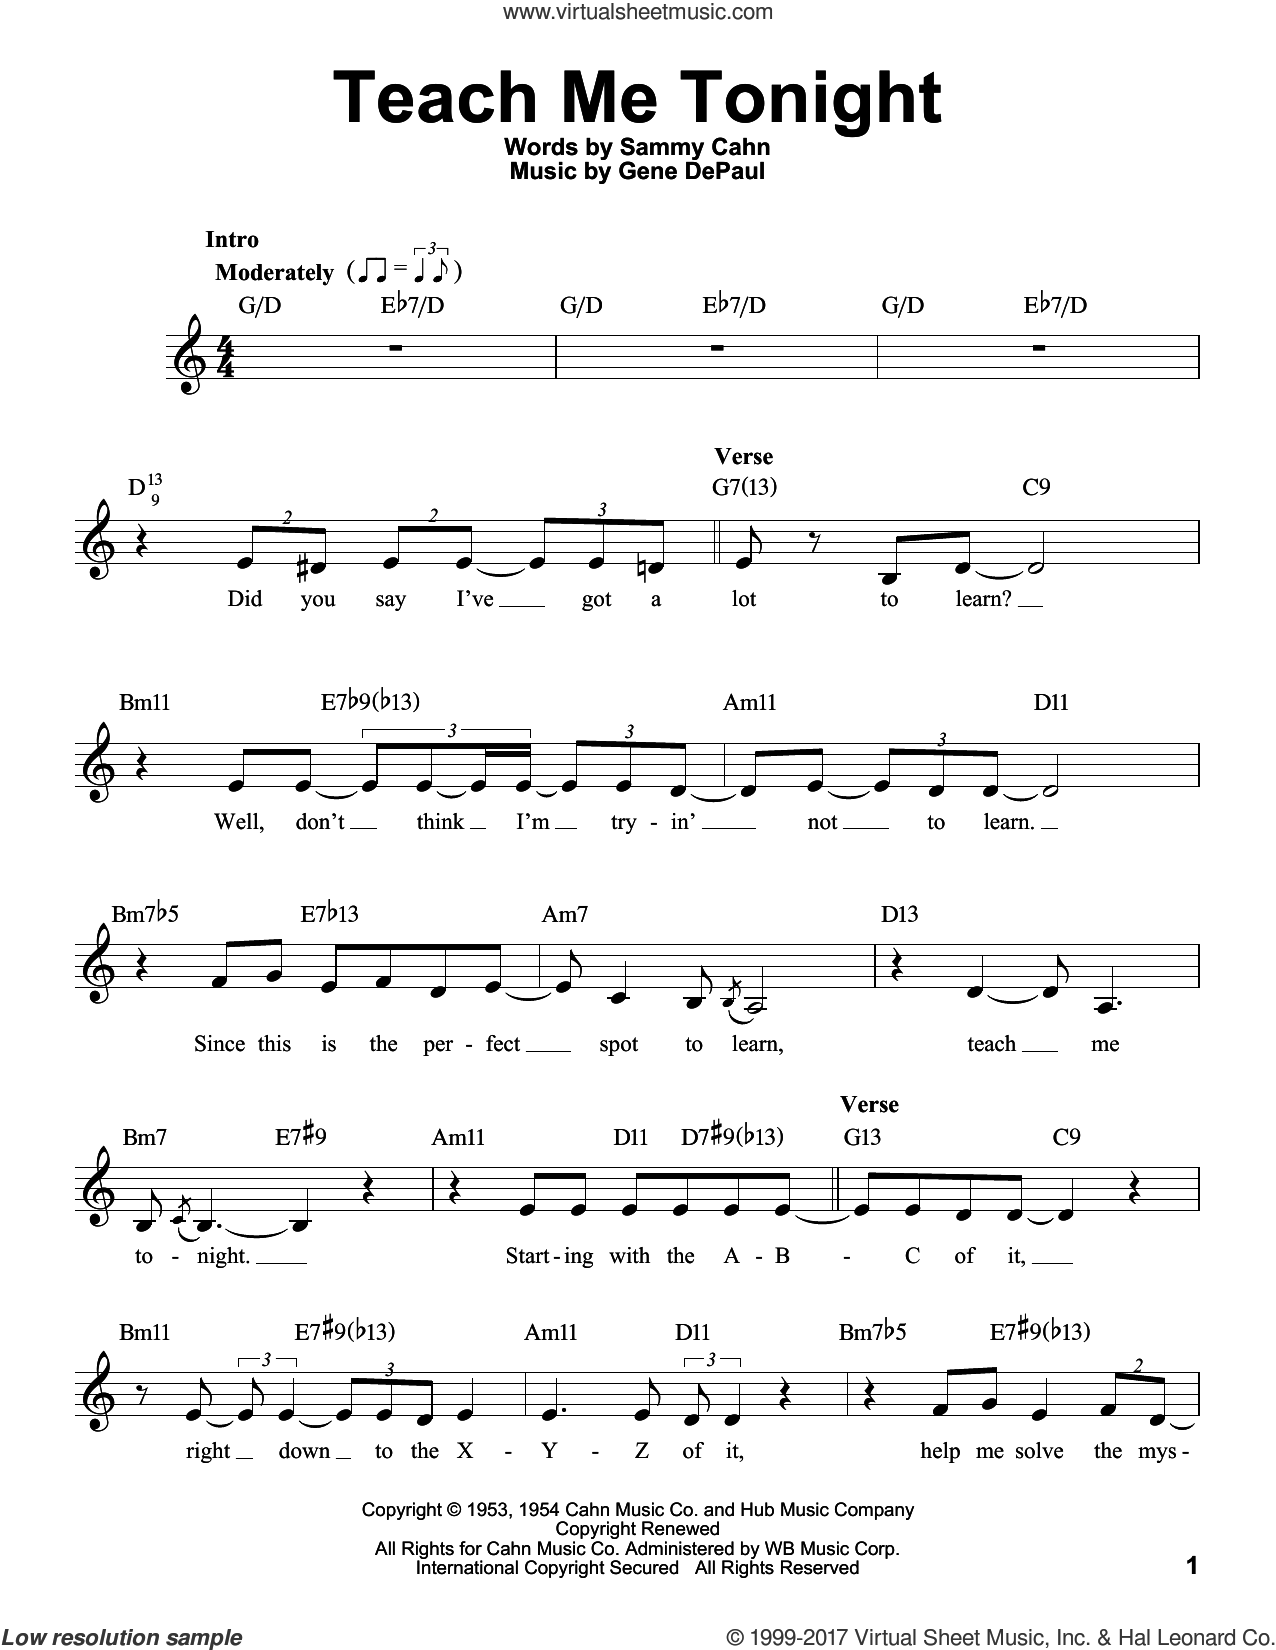 Teach Me Tonight sheet music for voice solo by Sammy Cahn, Judy Niemack and Gene DePaul, intermediate skill level